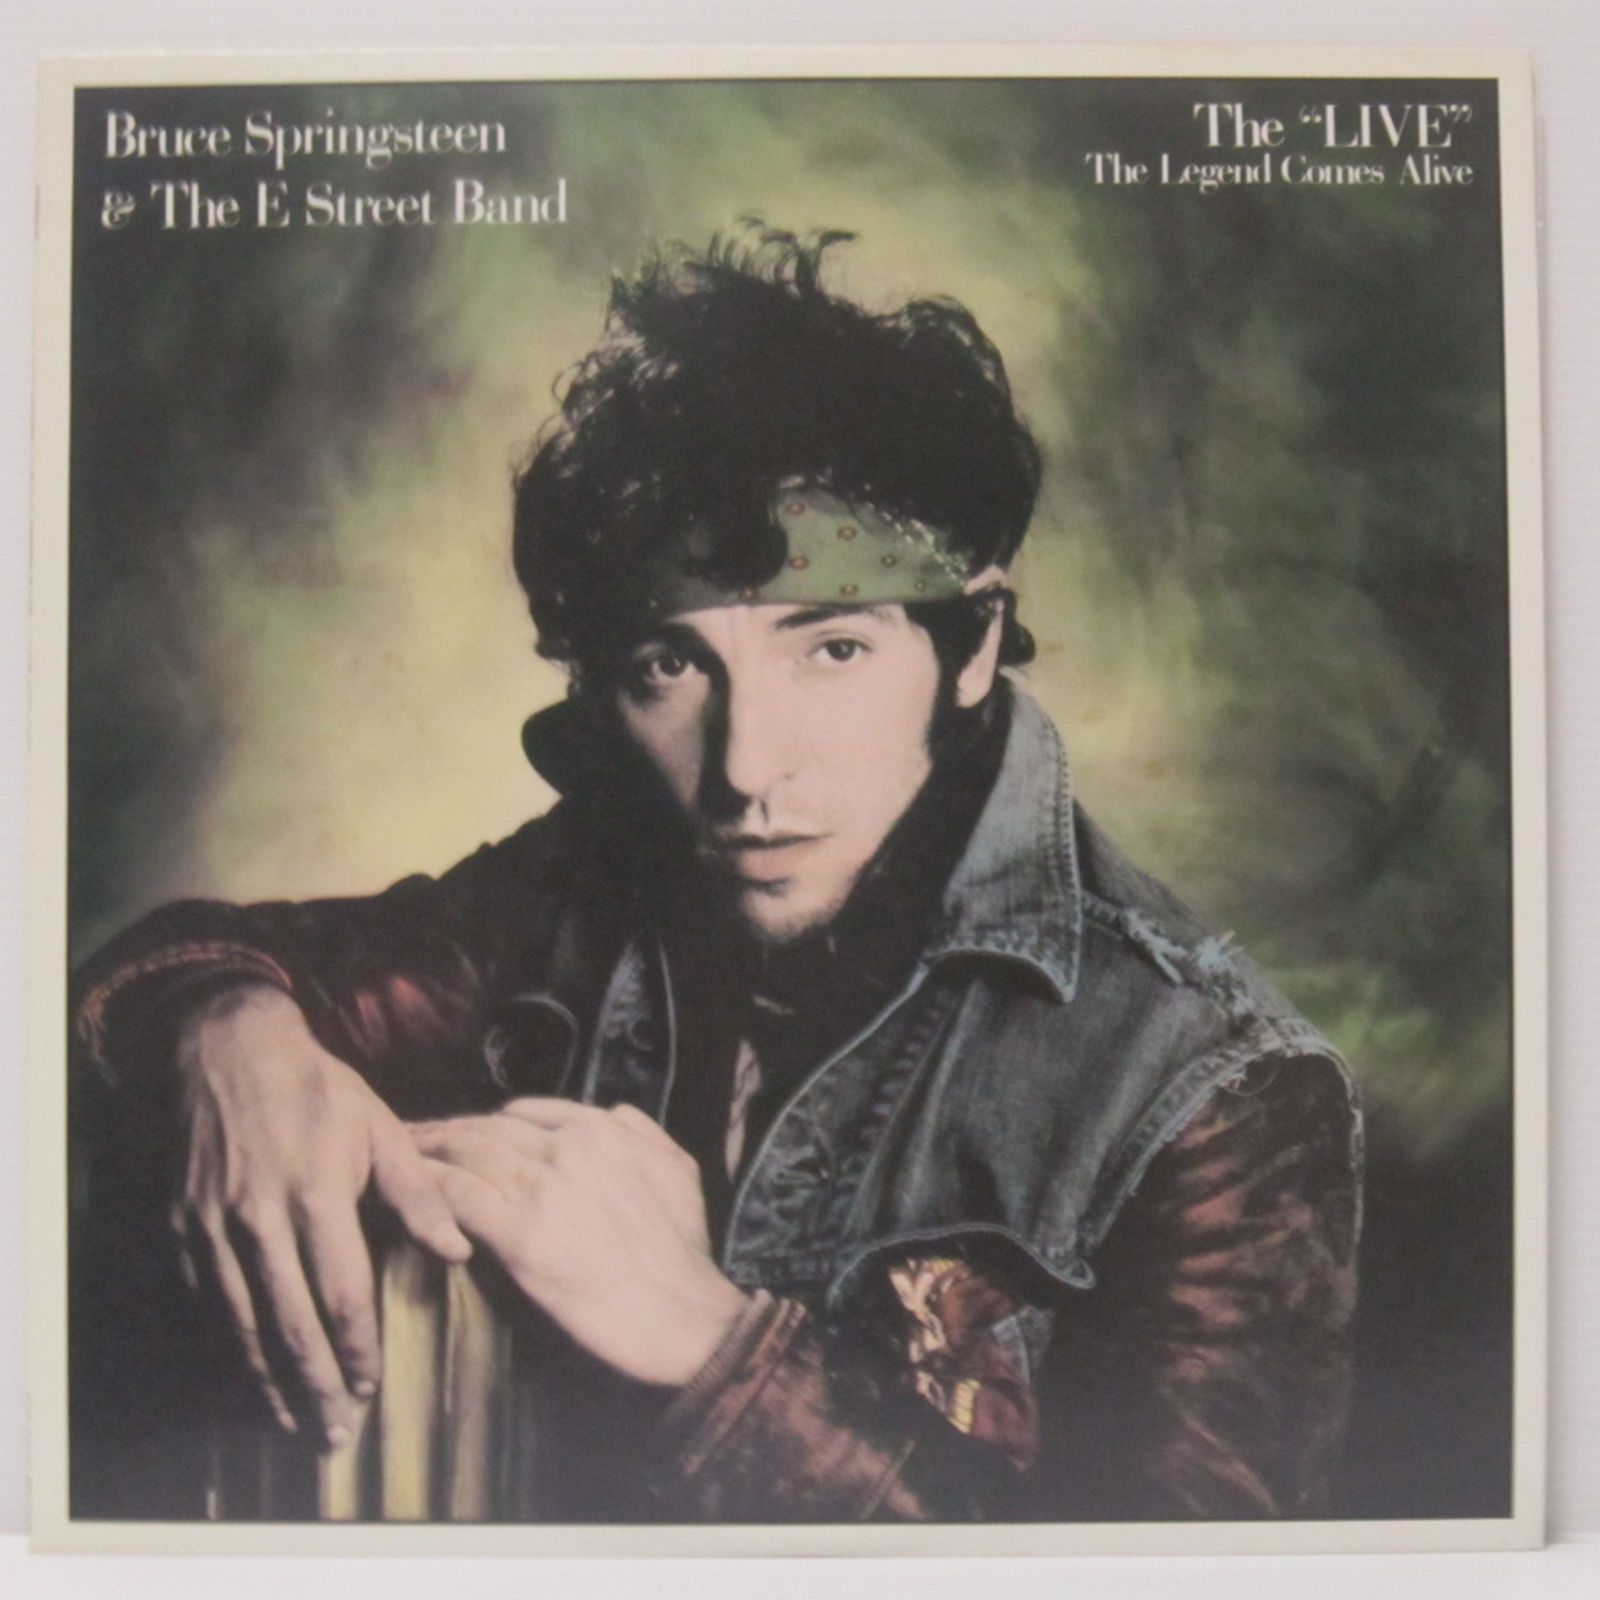 LP, Japan Bruce springsteen, Lp albums, Dancing in the dark